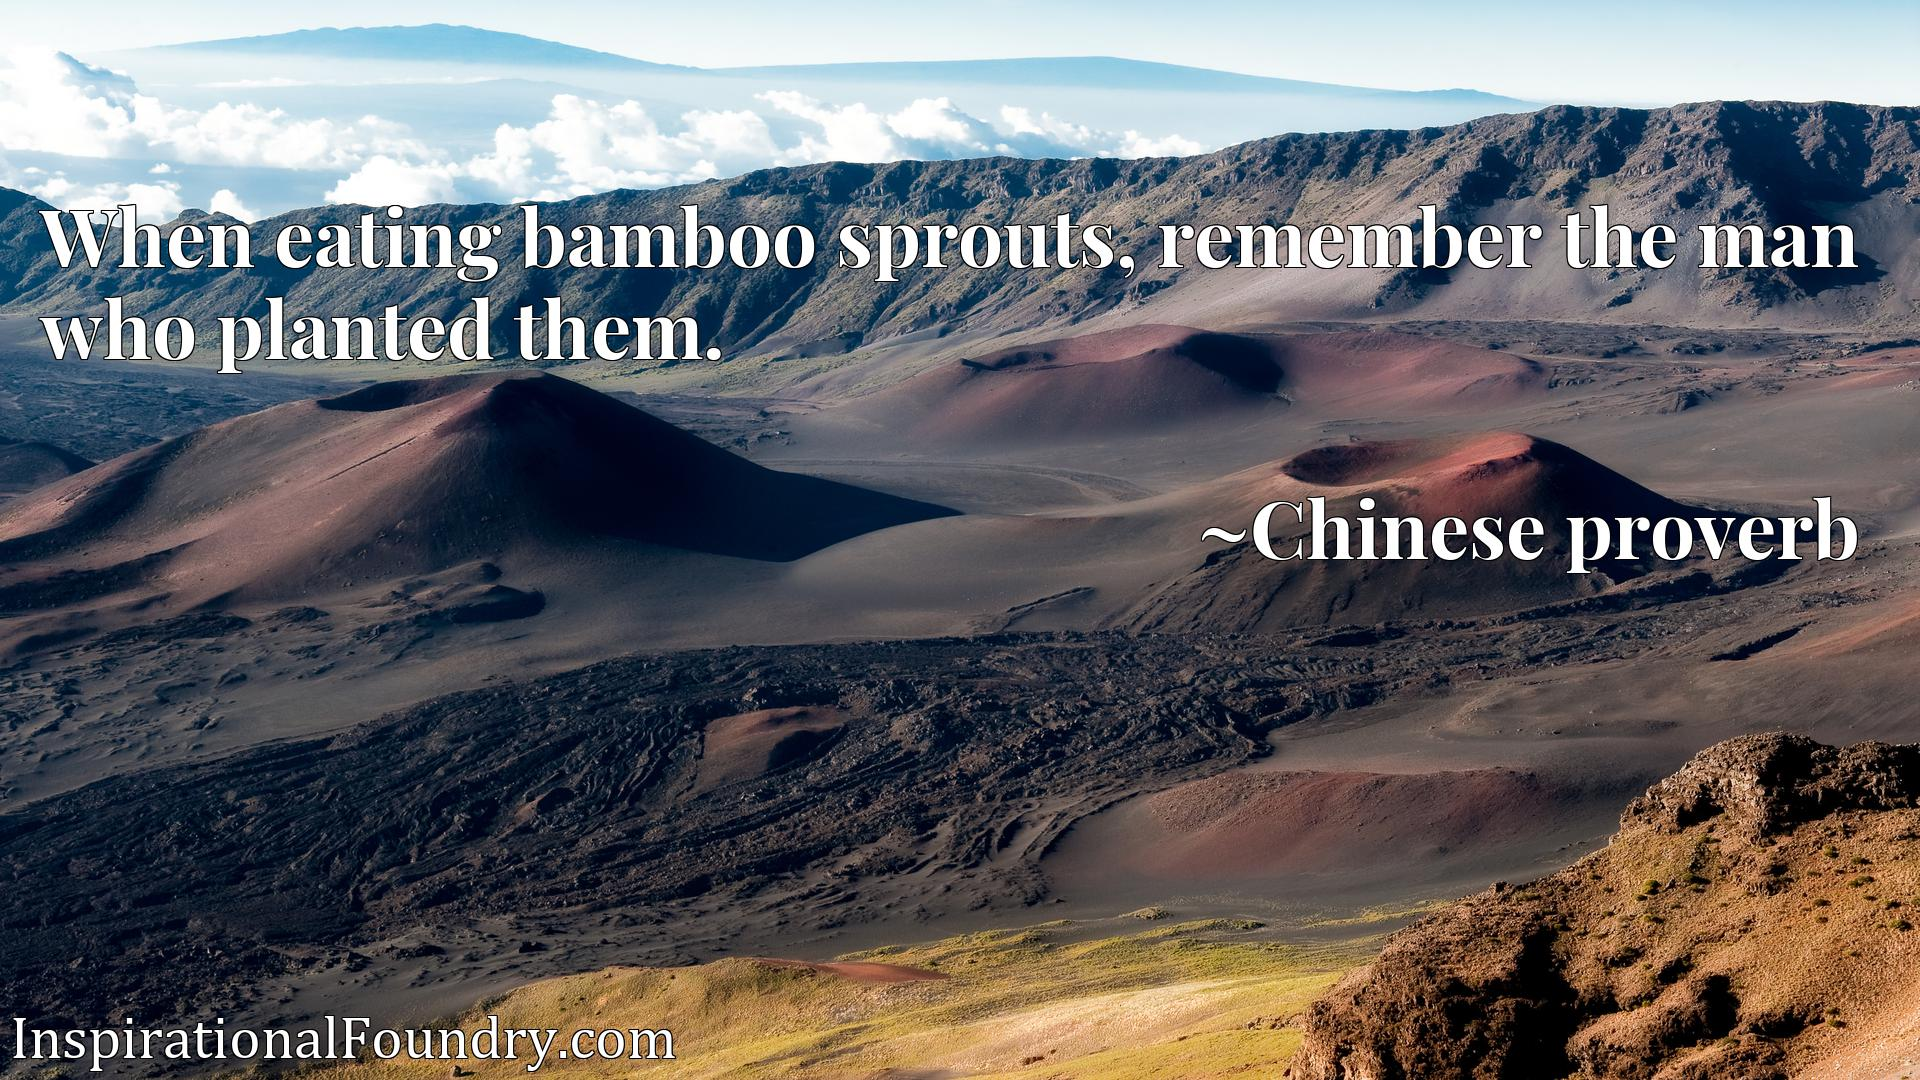 When eating bamboo sprouts, remember the man who planted them.